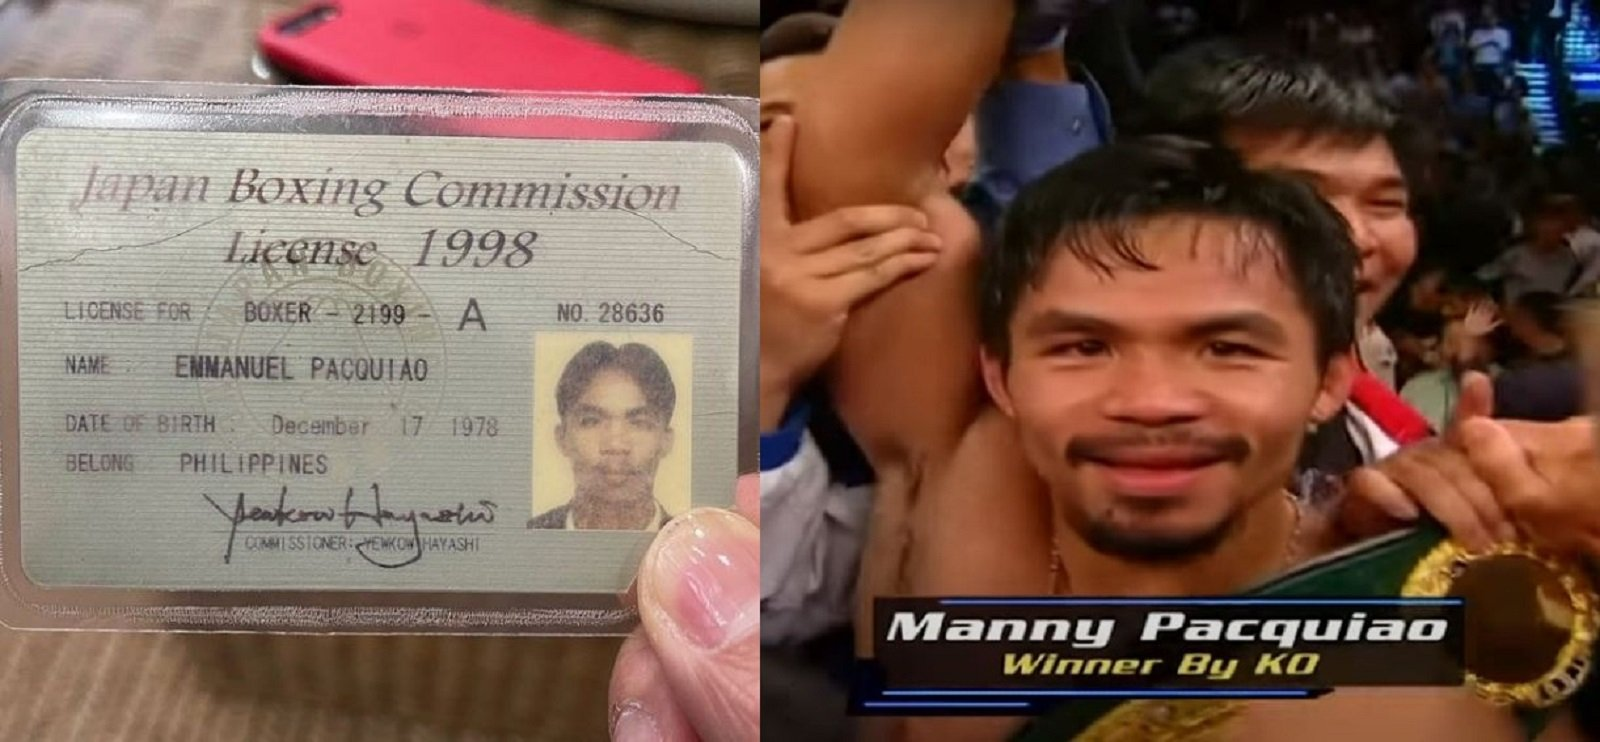 Pacquiao Reveals Old Japanese Boxing License and Story To Go With It